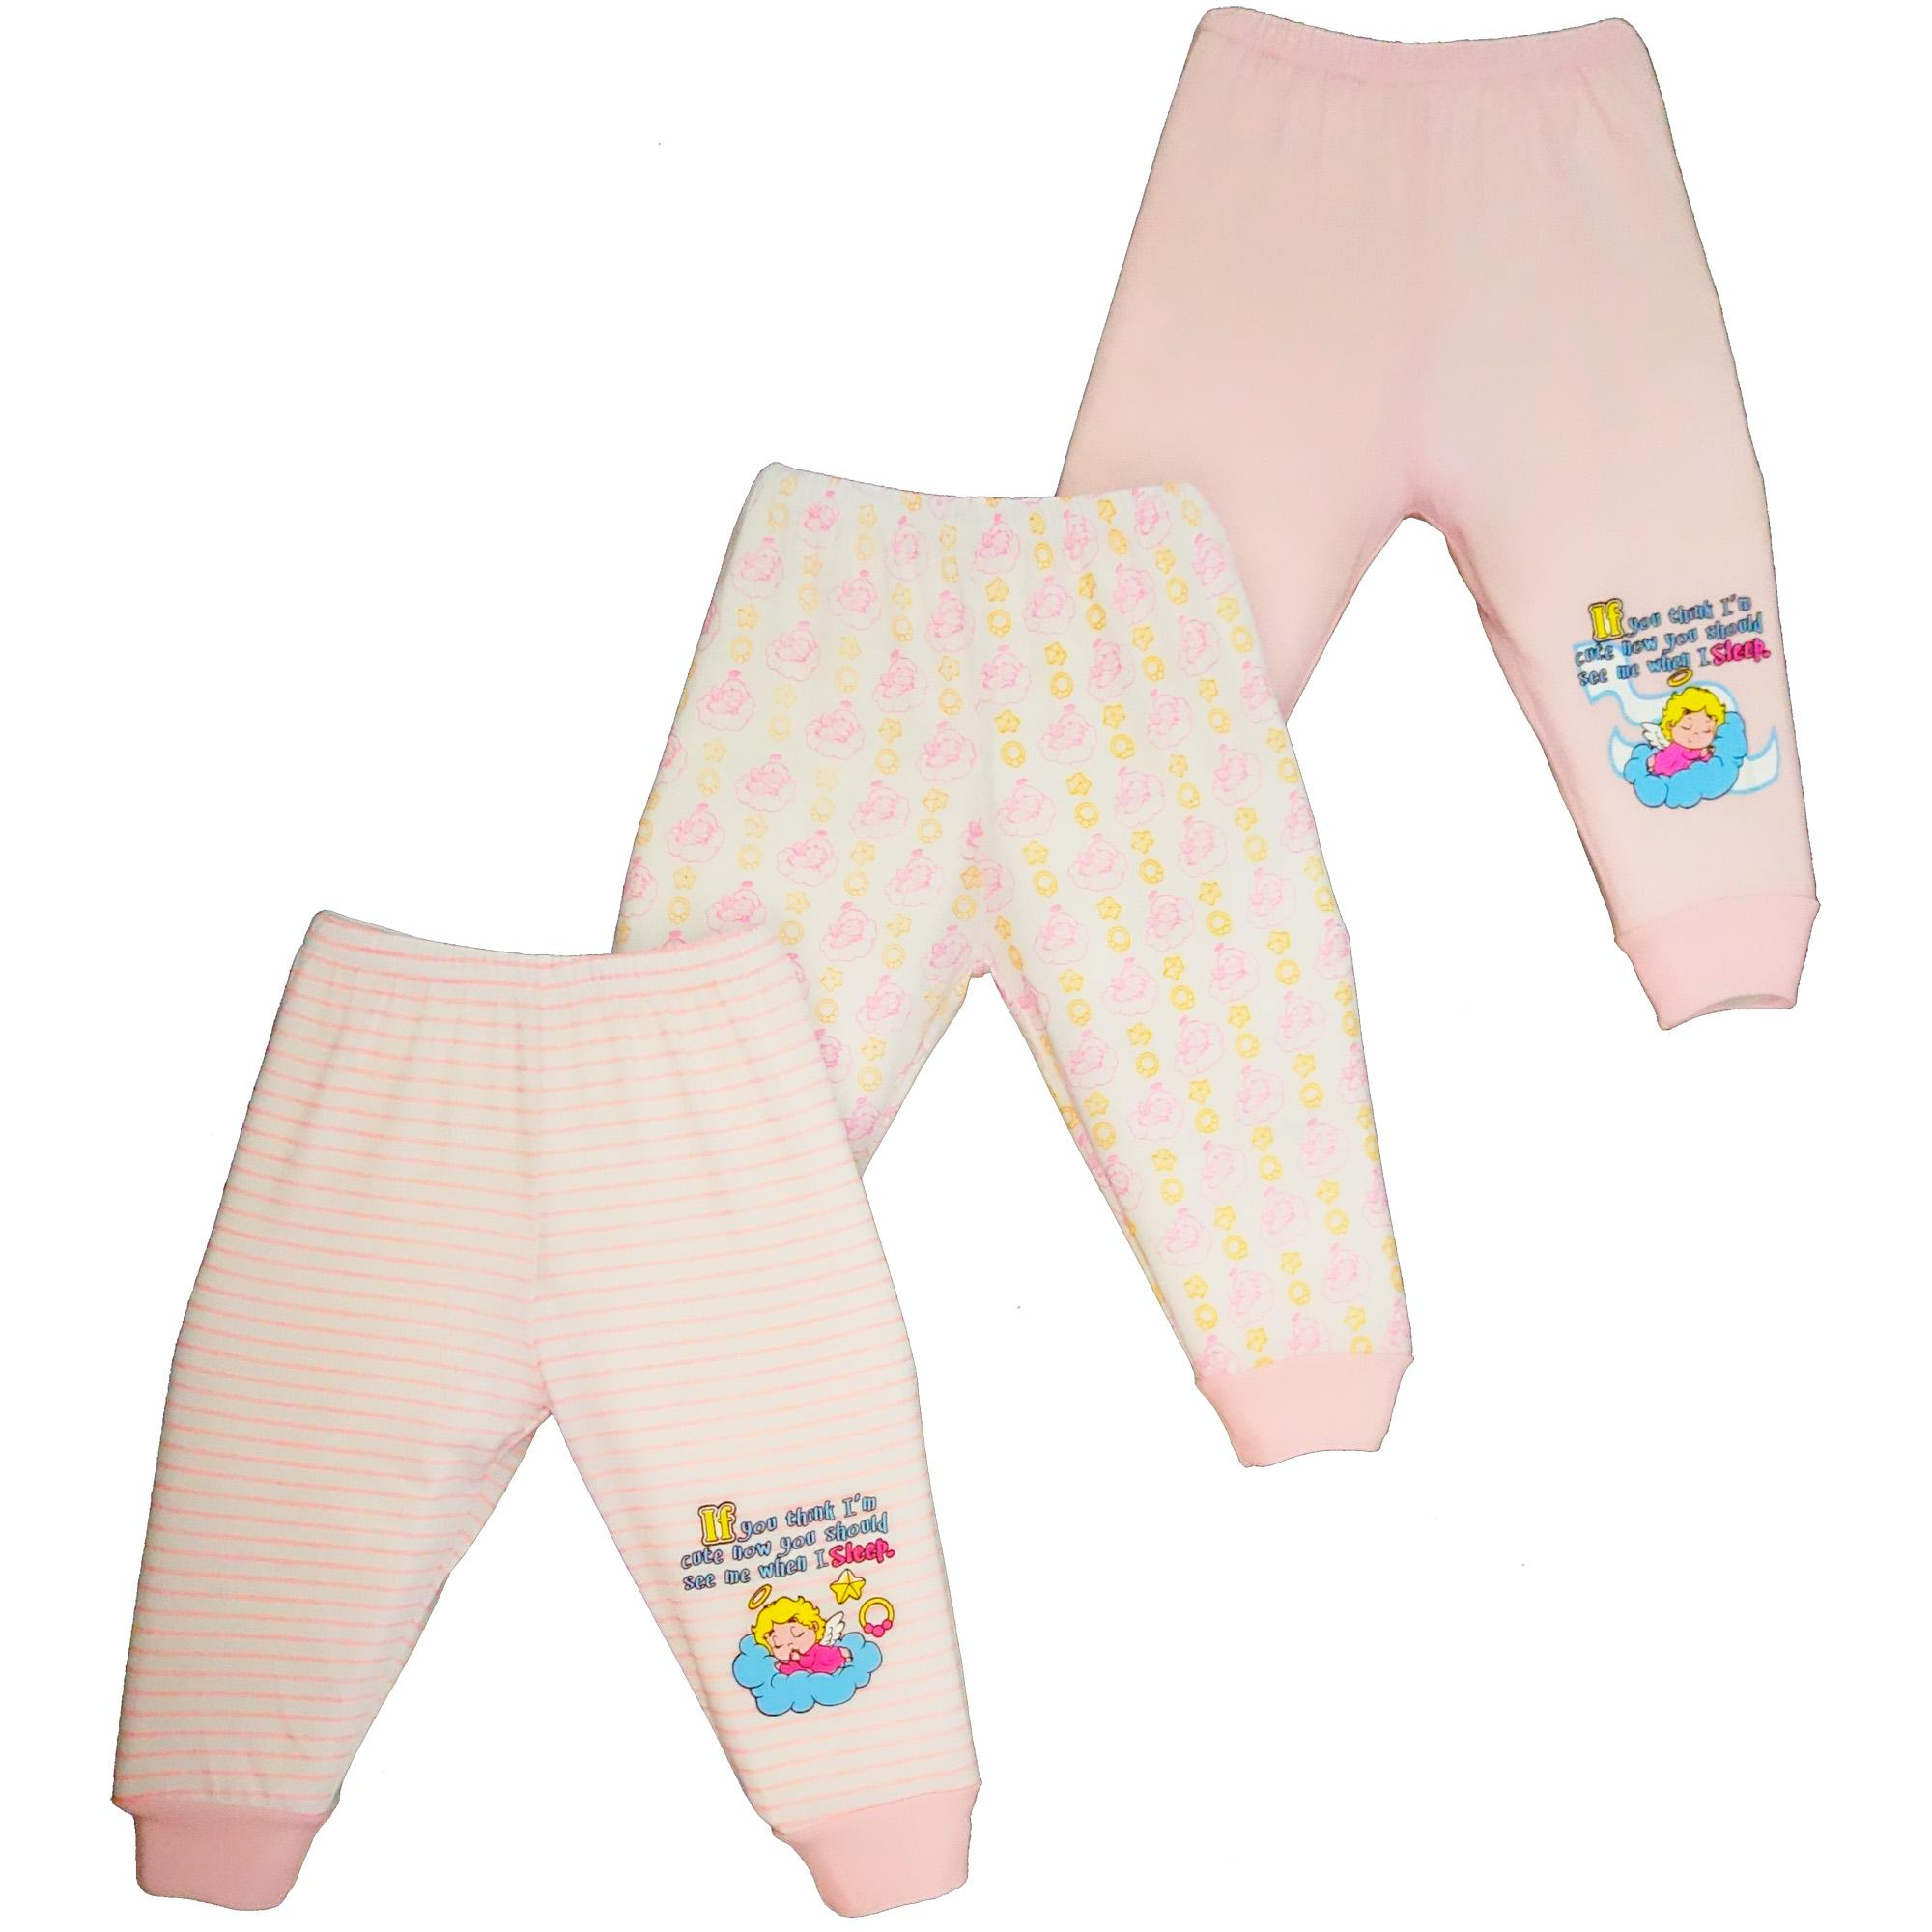 e90550d1092c Girls Pants for sale - Baby Pants for Girls online brands